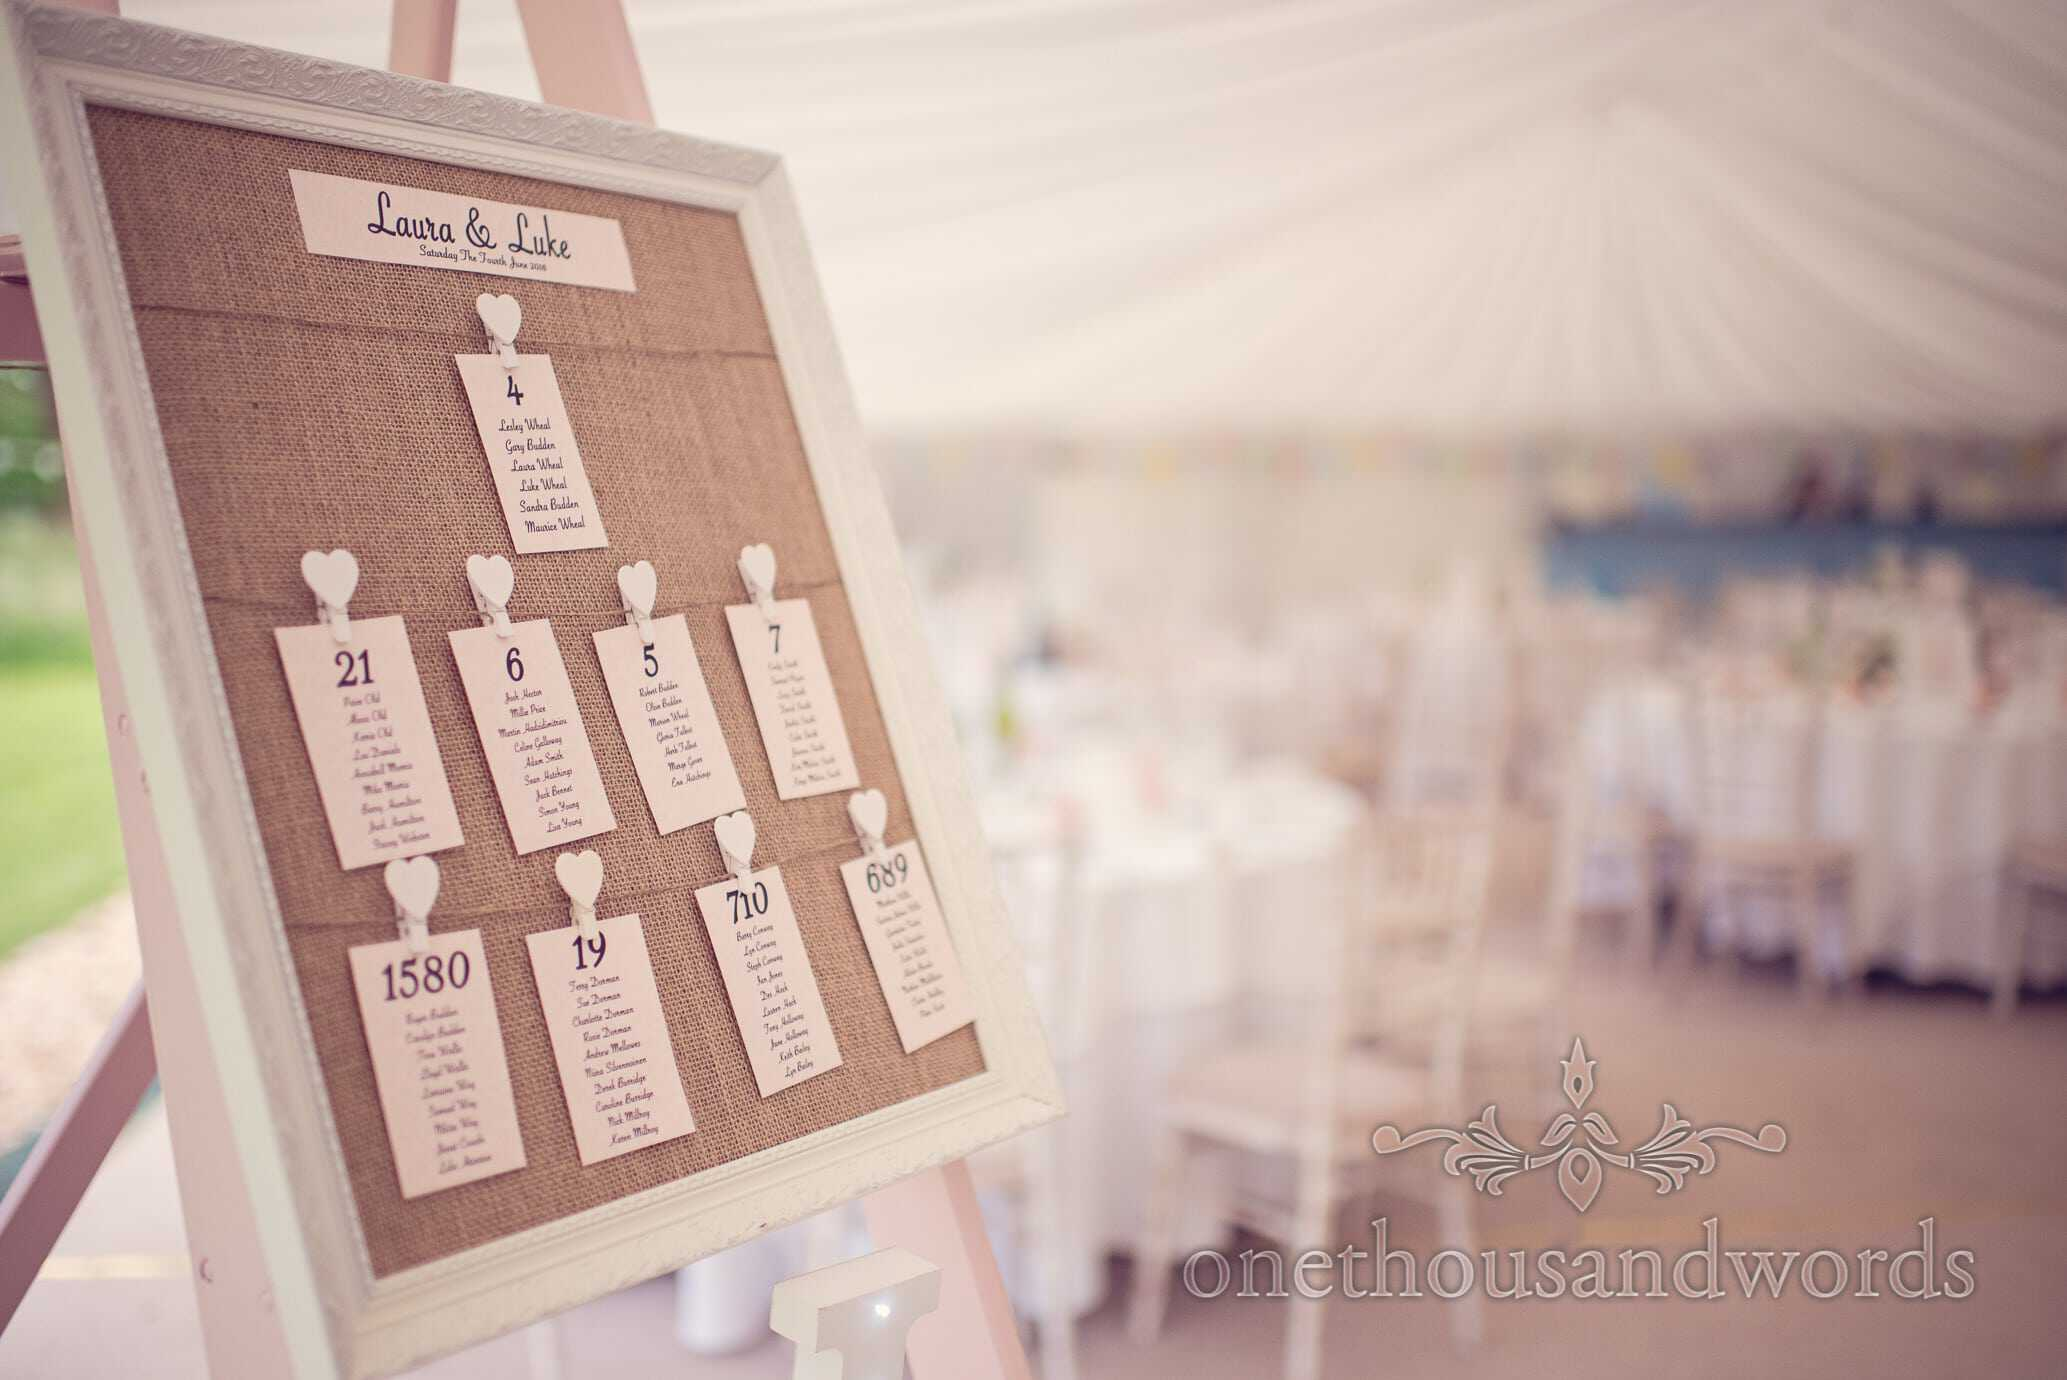 Hessian peg board picture frame table plan at Deans Court wedding